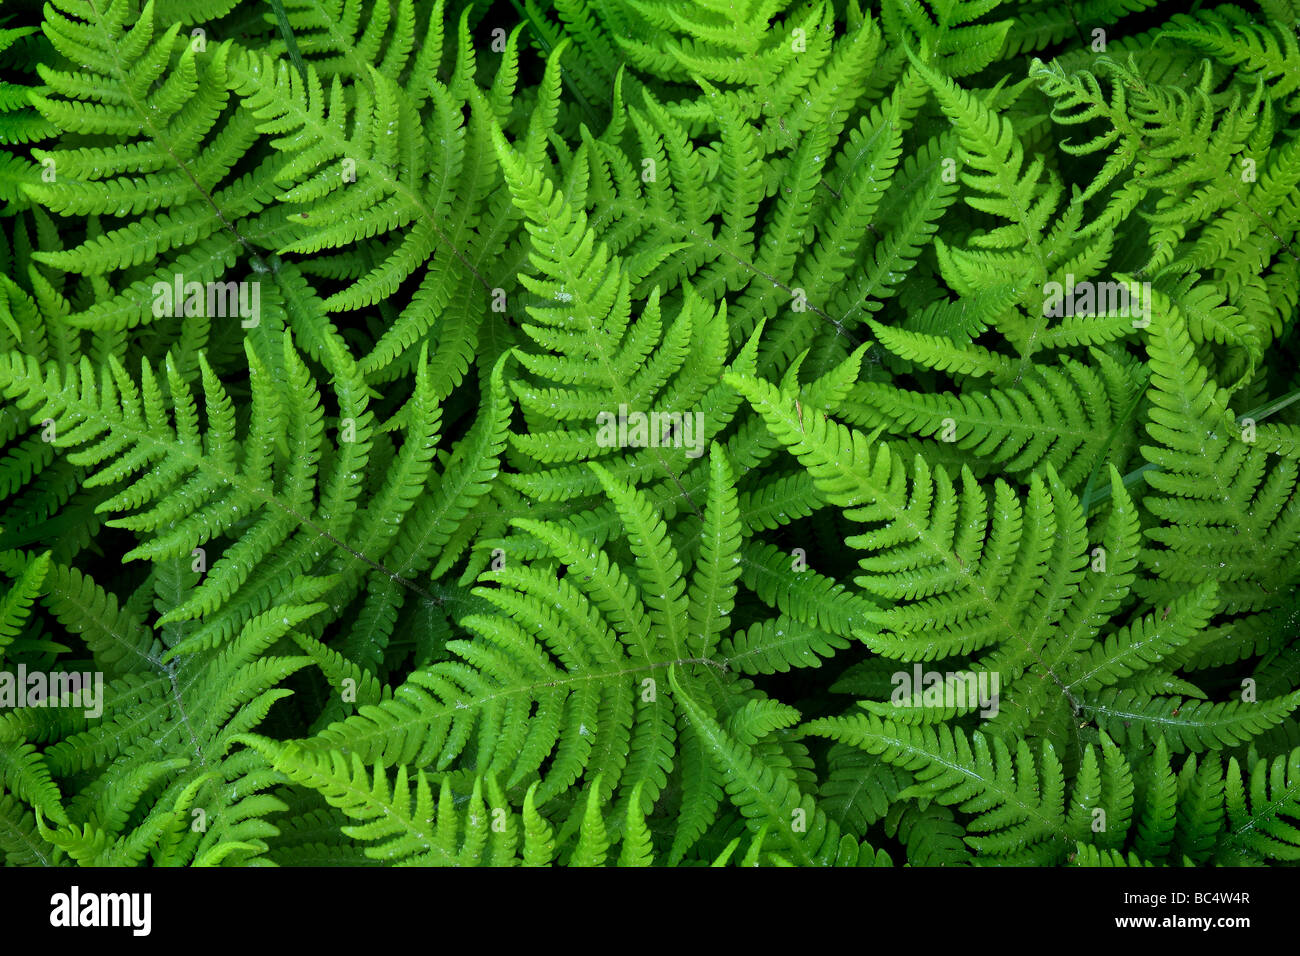 Ferns in a forest near the lake Vansjø in southeastern Norway - Stock Image